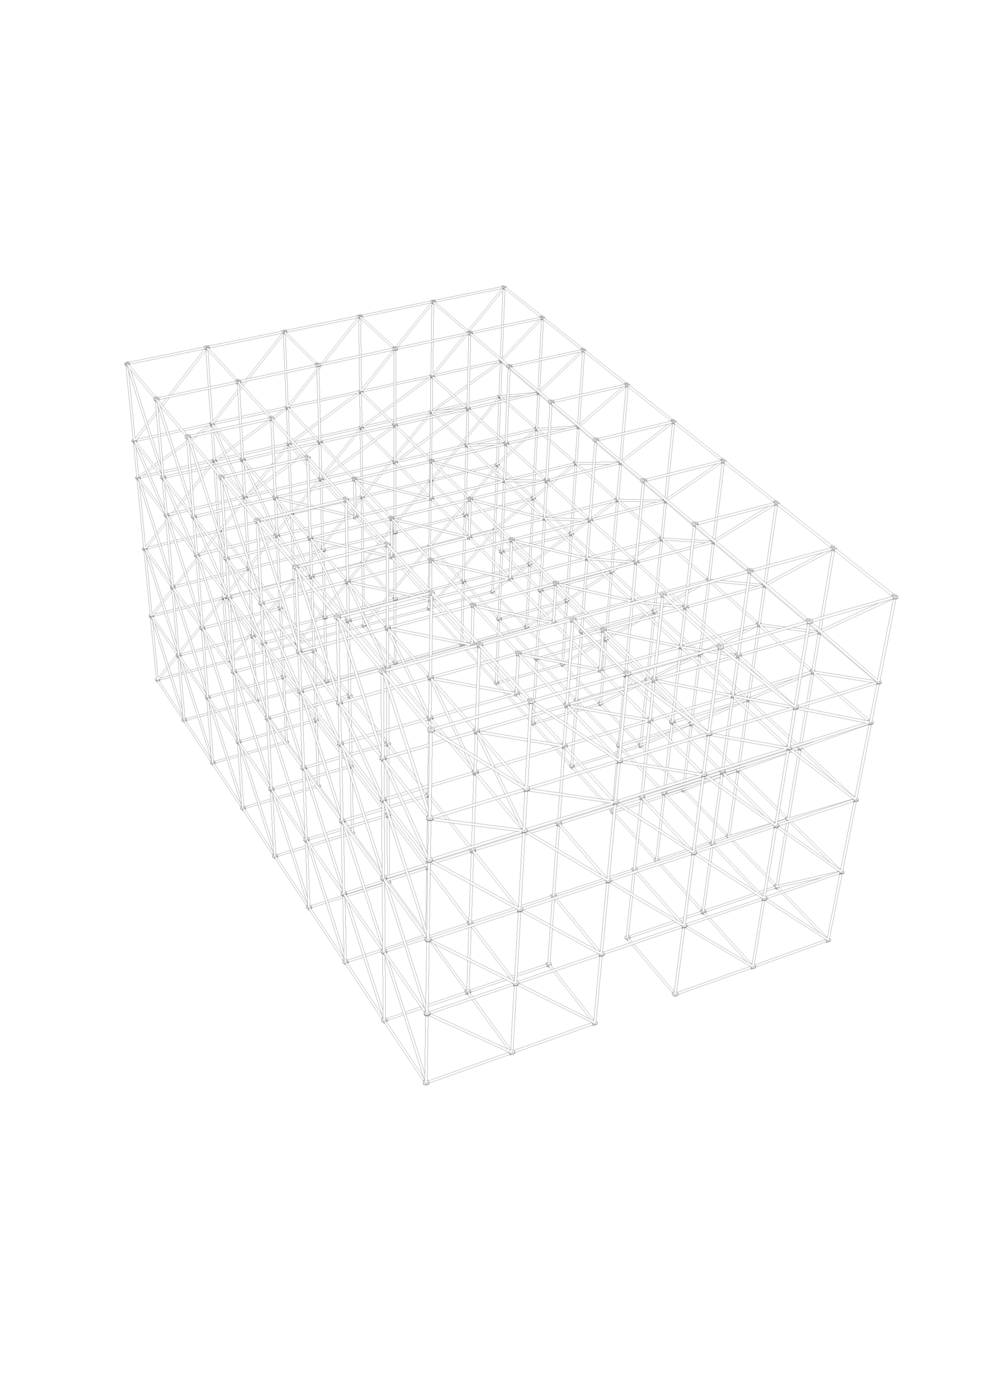 3 SCAFFOLD.png